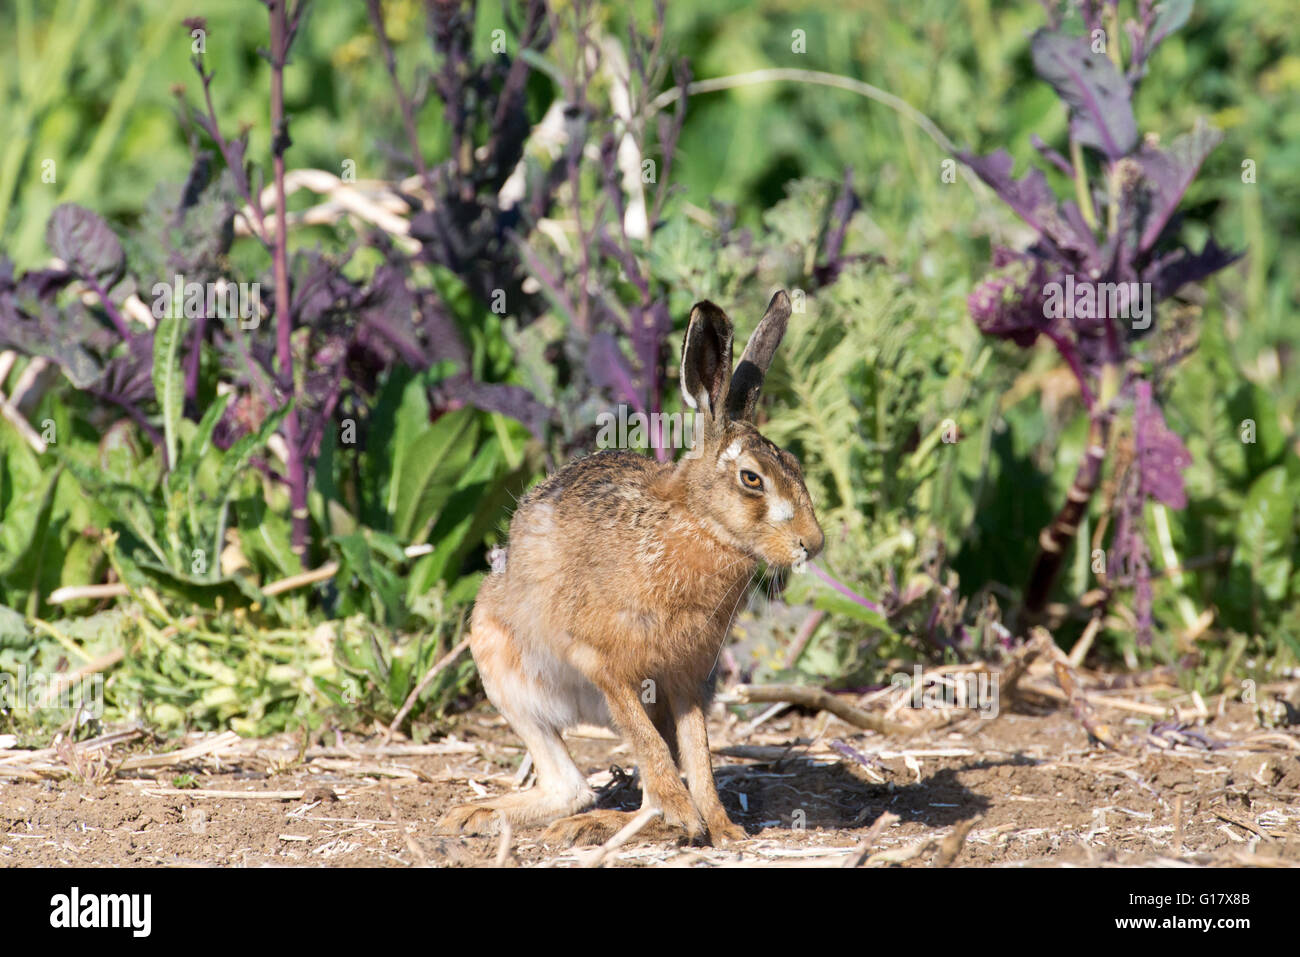 Brown hare (Lepus europaeus) twisting to change direction - Stock Image